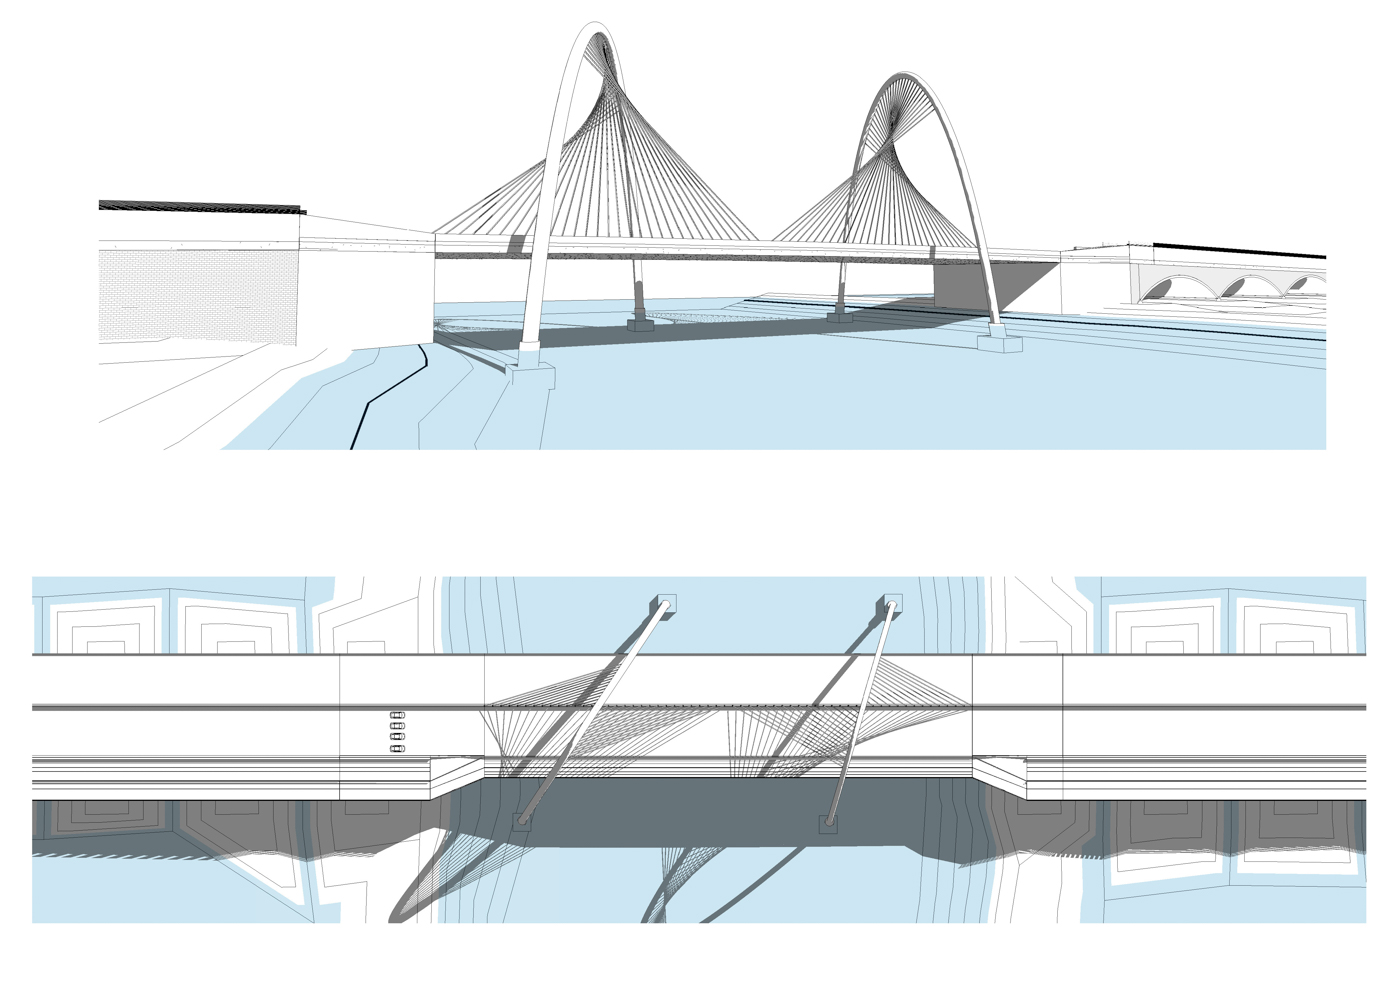 Concept 2: A tied-arch bridge consisting of two unbraced arches, which rest on foundations on both sides of the deck.